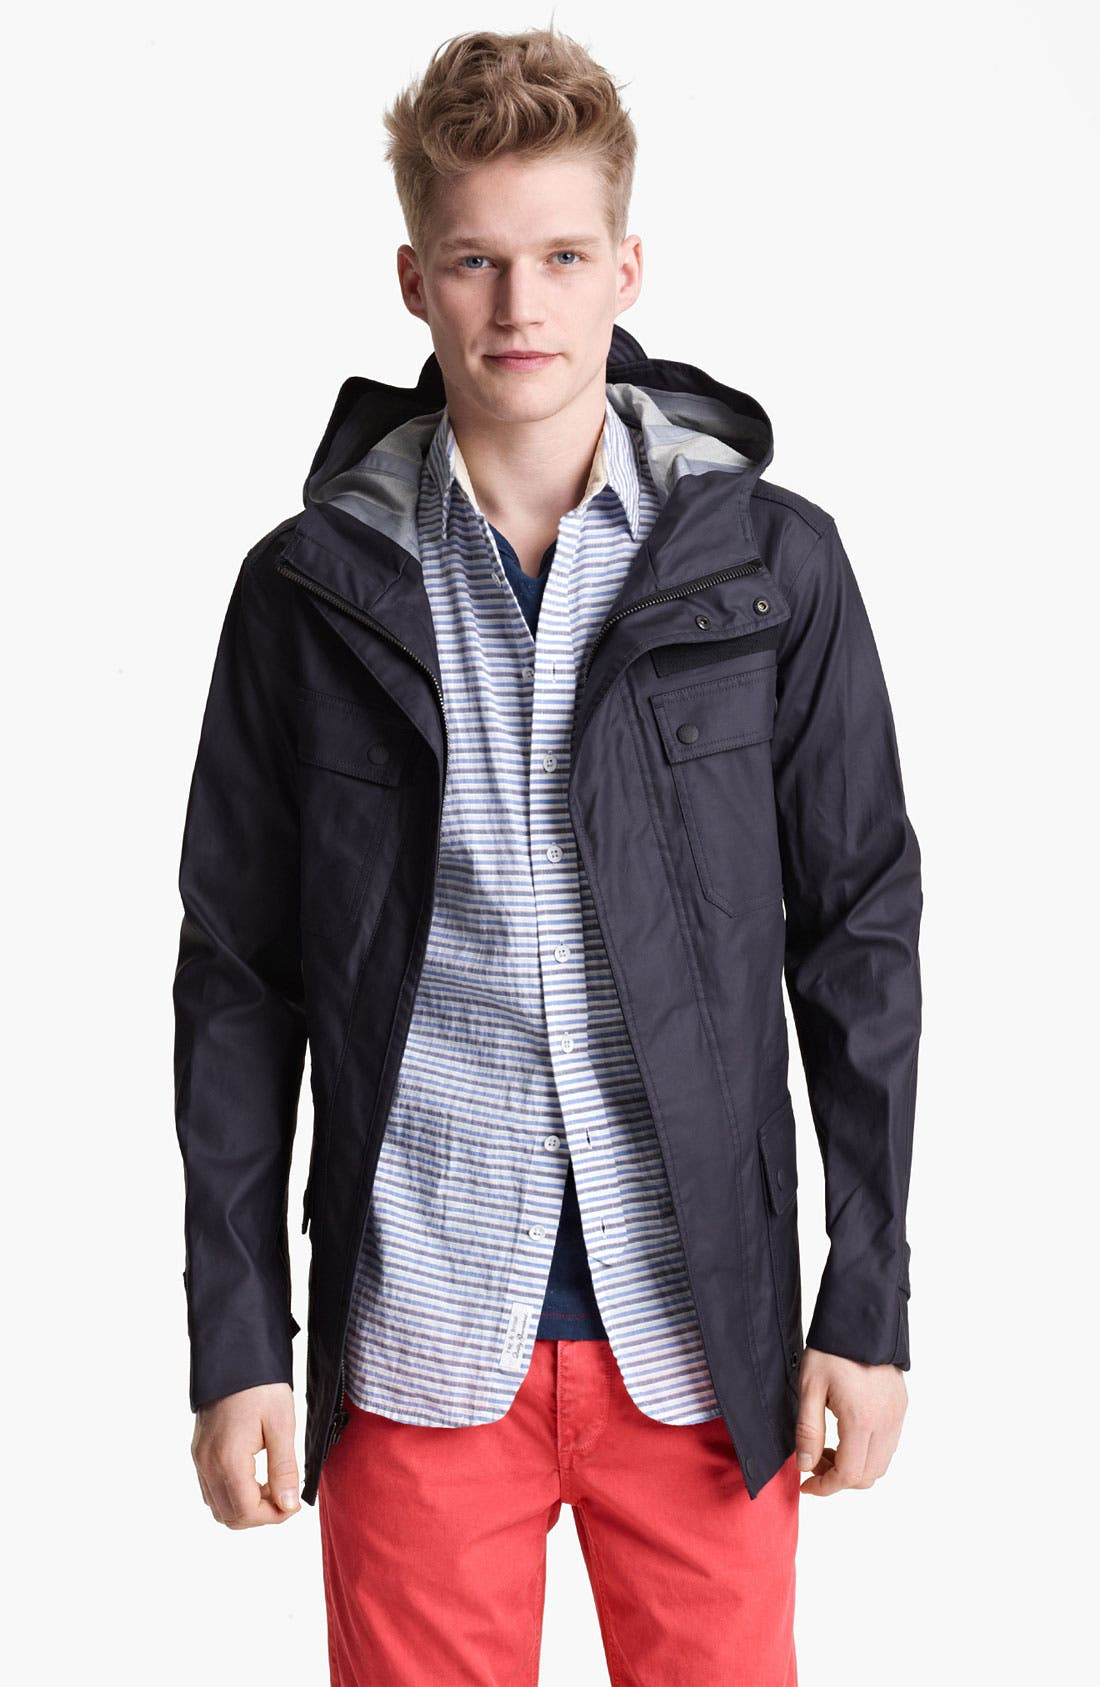 Alternate Image 1 Selected - rag & bone 'Lowman' Jacket